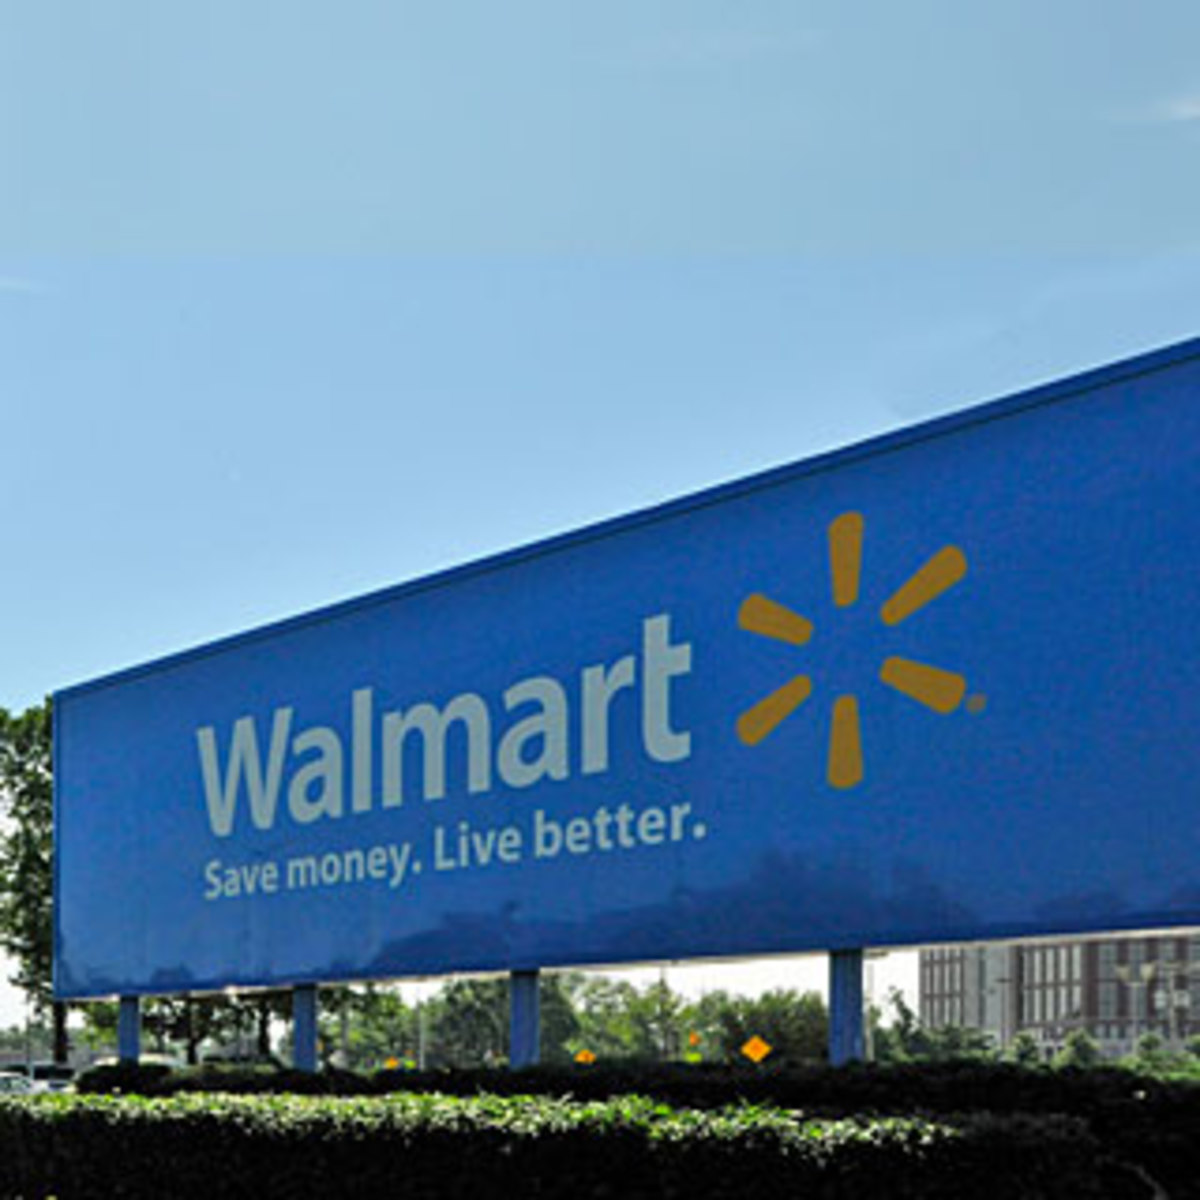 walmart is good for america essay Nowadays, walmart is beneficial and convenient for its customers many people shop from it and the prices are low, and the service is good people save their money by going to walmart and purchasing there.